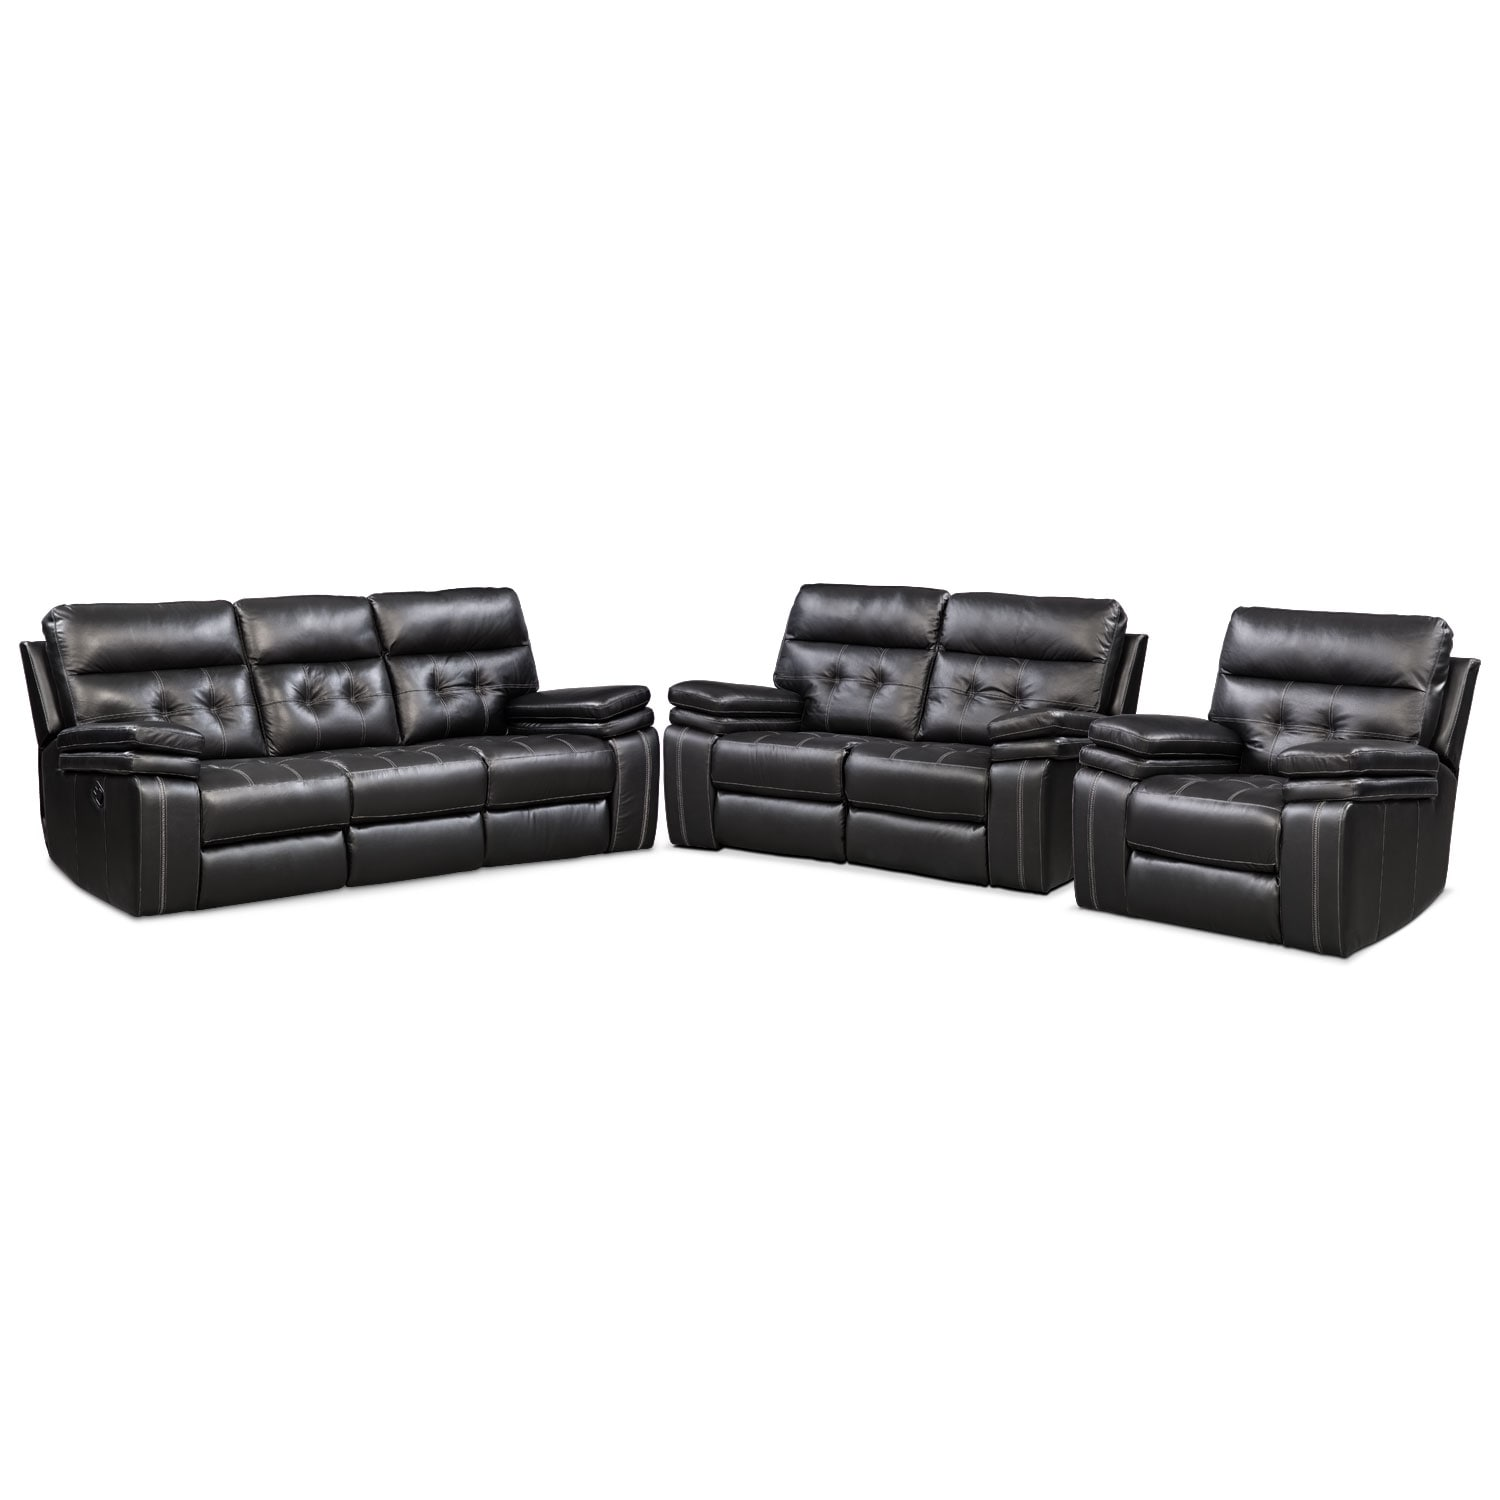 Living Room Furniture - Brisco Manual Reclining Sofa, Loveseat, and Recliner